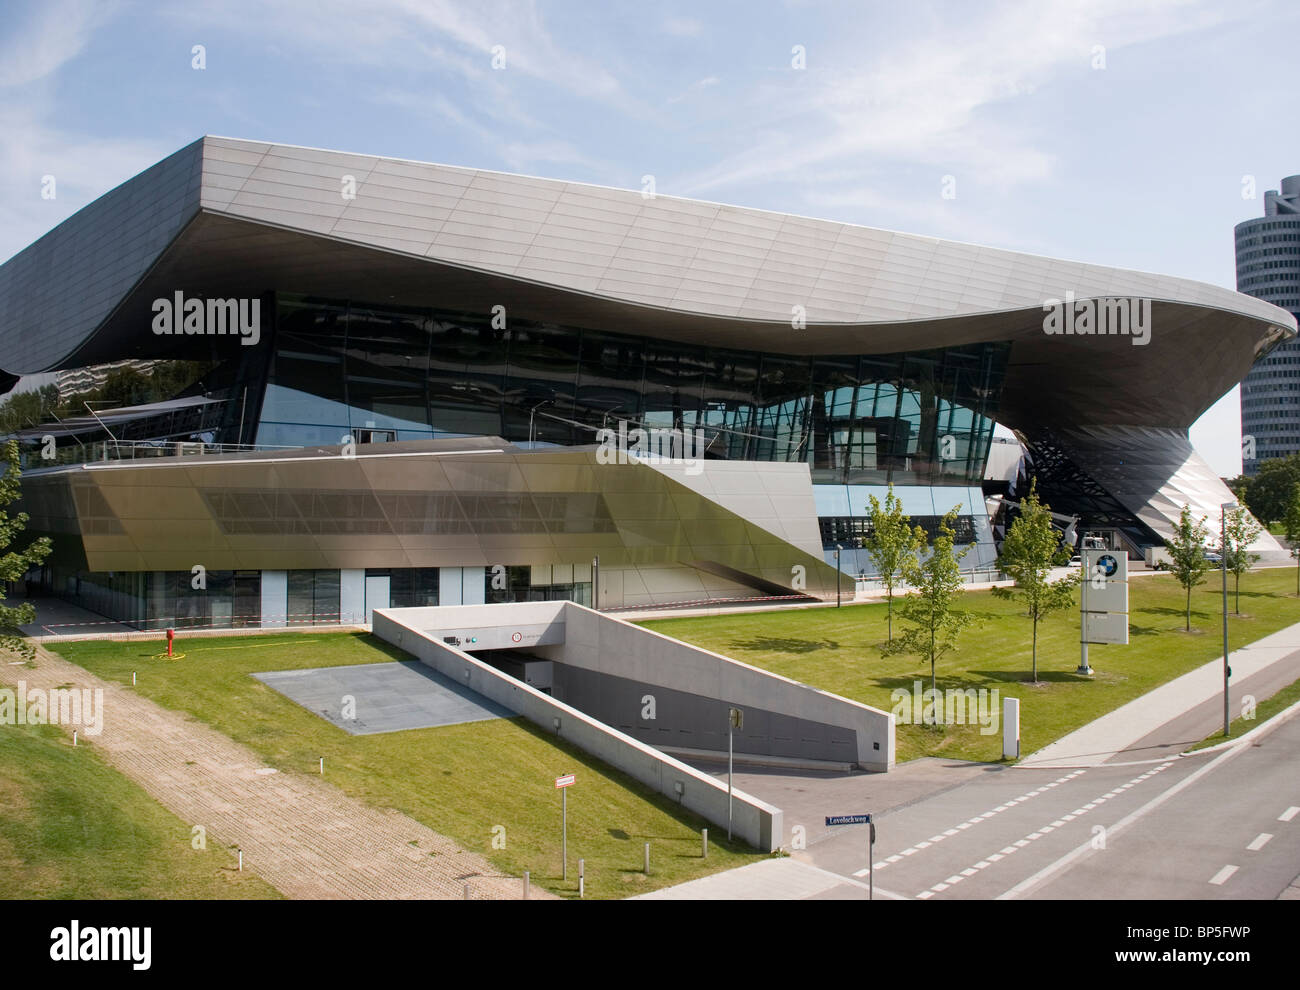 The BMW Museum is located near the Olympiapark in Munich and was established in 1972 shortly before the Summer Olympics - Stock Image